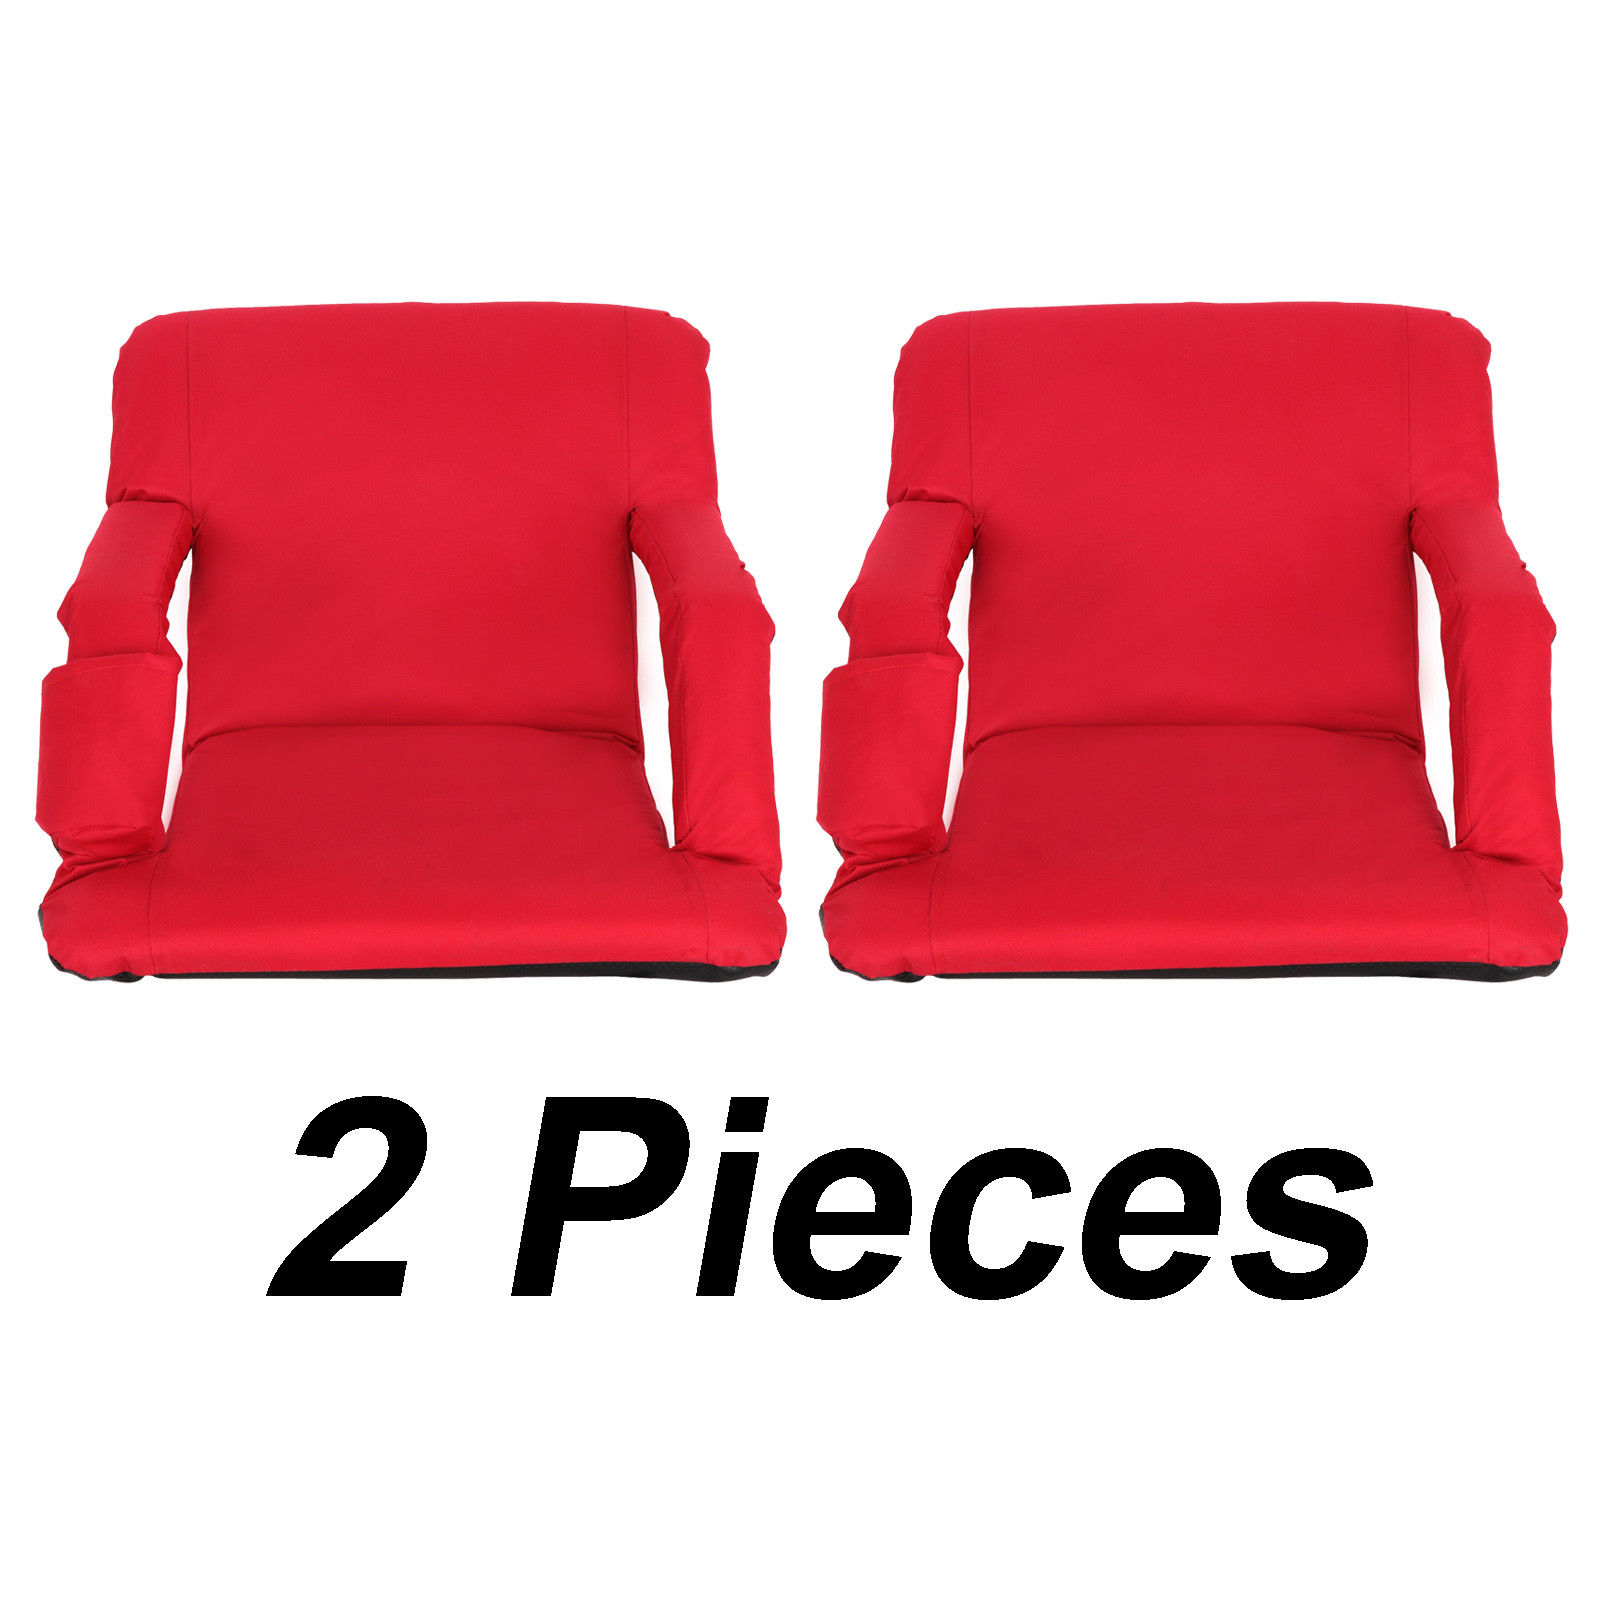 Zeny 2 Pieces Wide Stadium Seats Chairs for Bleachers Benches 5 Reclining Positions by